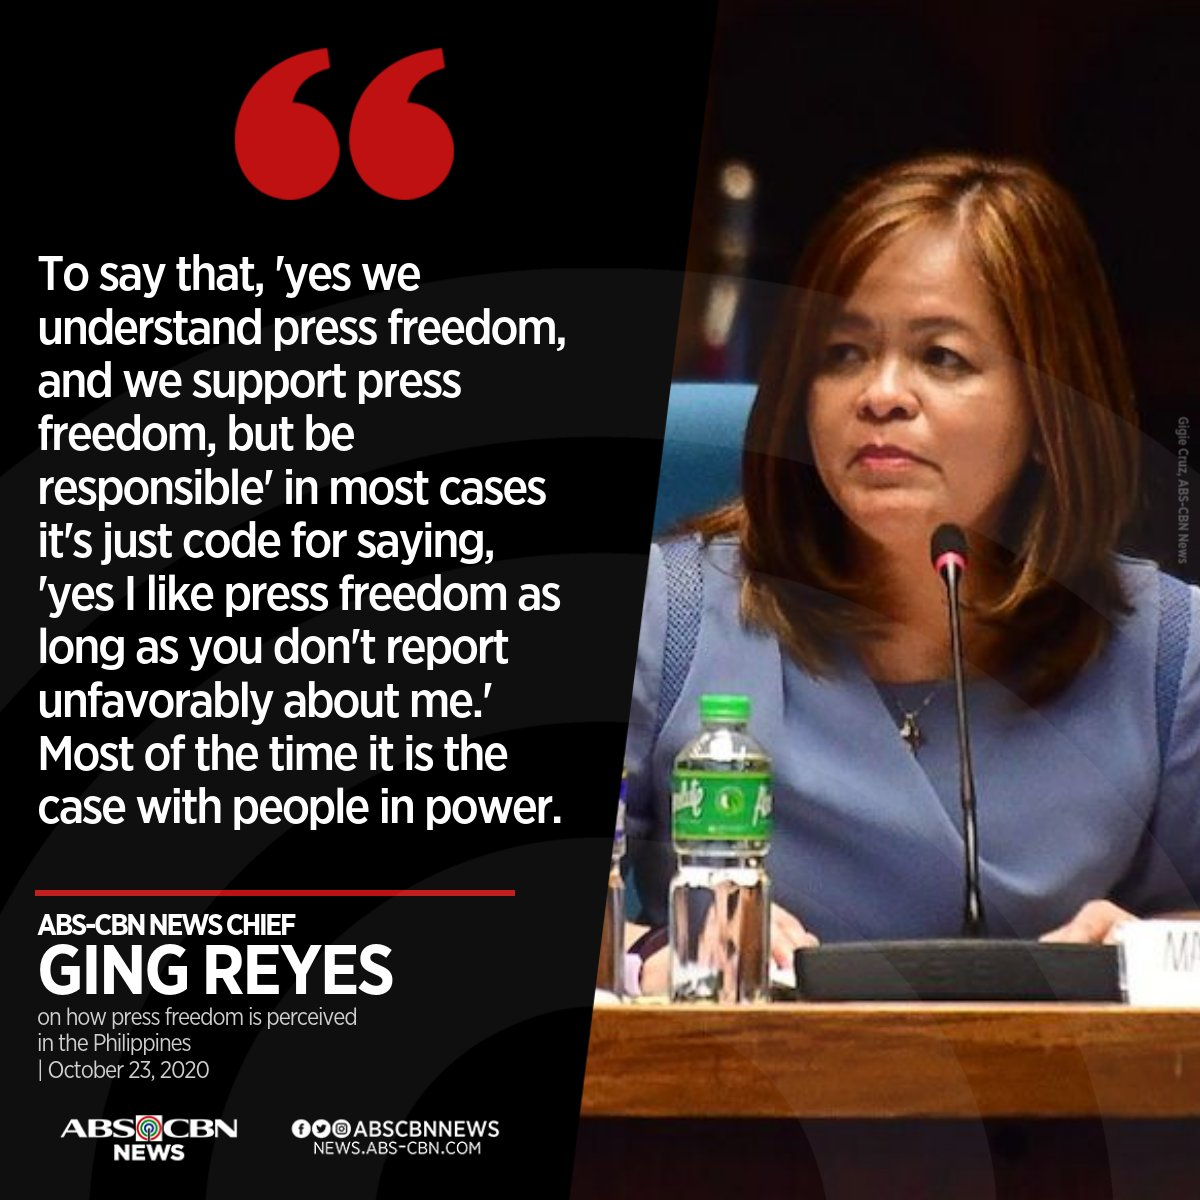 ABS-CBN News chief Ging Reyes says people in power only like the idea of press freedom when it's convenient for them.  Read more: https://t.co/psK38NvODB https://t.co/b1SCuUtyeR